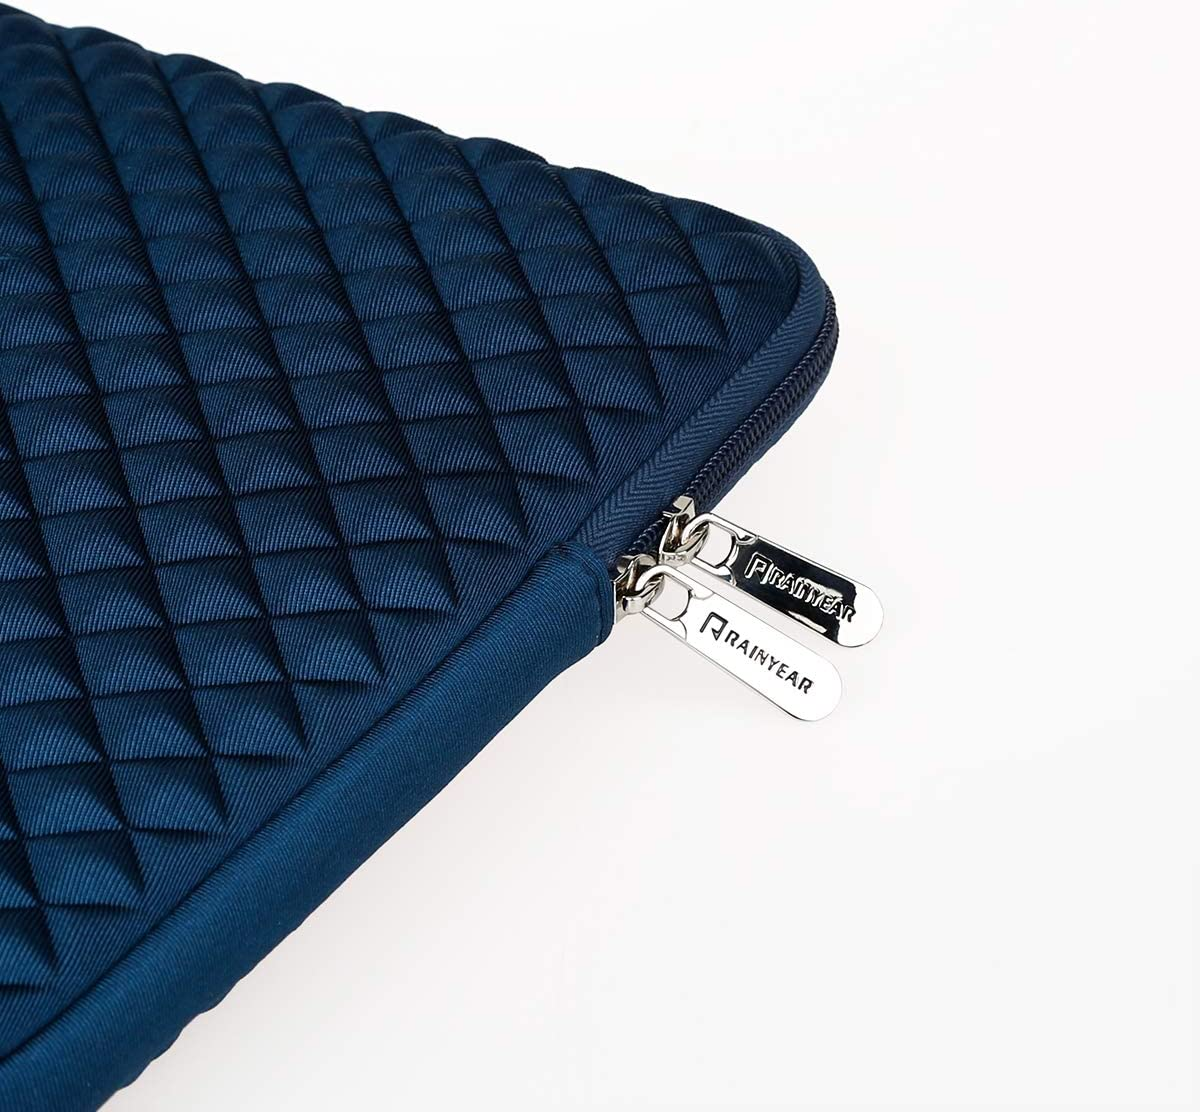 Navy Blue RAINYEAR 13 Inch Laptop Sleeve Diamond Foam Water/&Shock Resistant Case Cover Bag Compatible 13.3 Macbook Air Pro 13.5 Surface Laptop 13 Notebook Chromebook for Dell HP Lenovo Thinkpad Asus